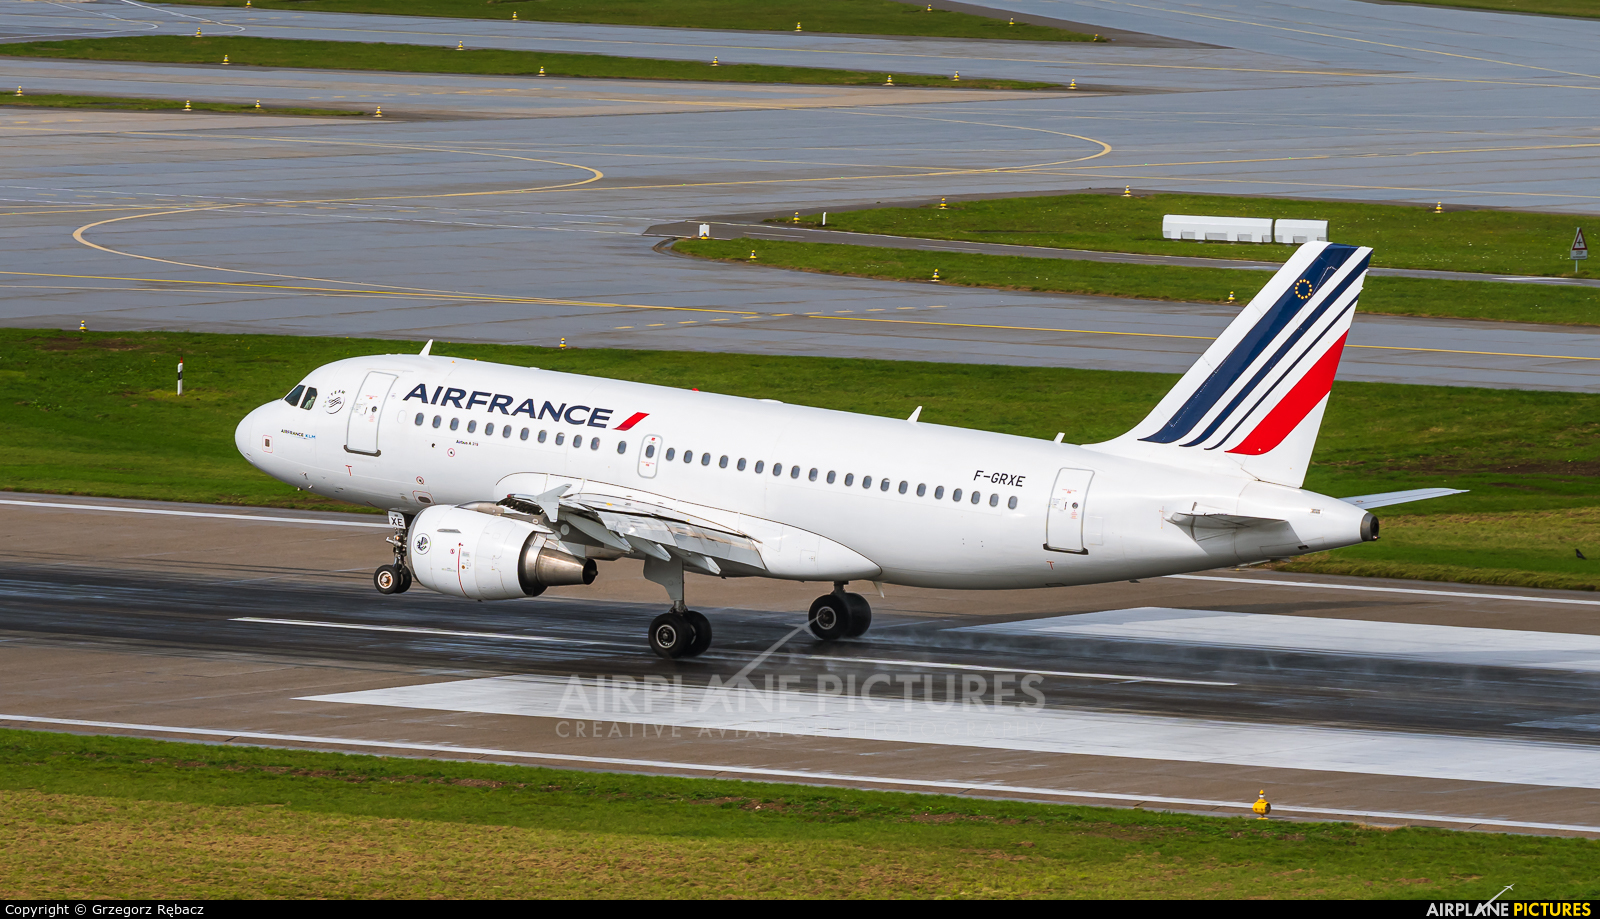 Air France F-GRXE aircraft at Zurich